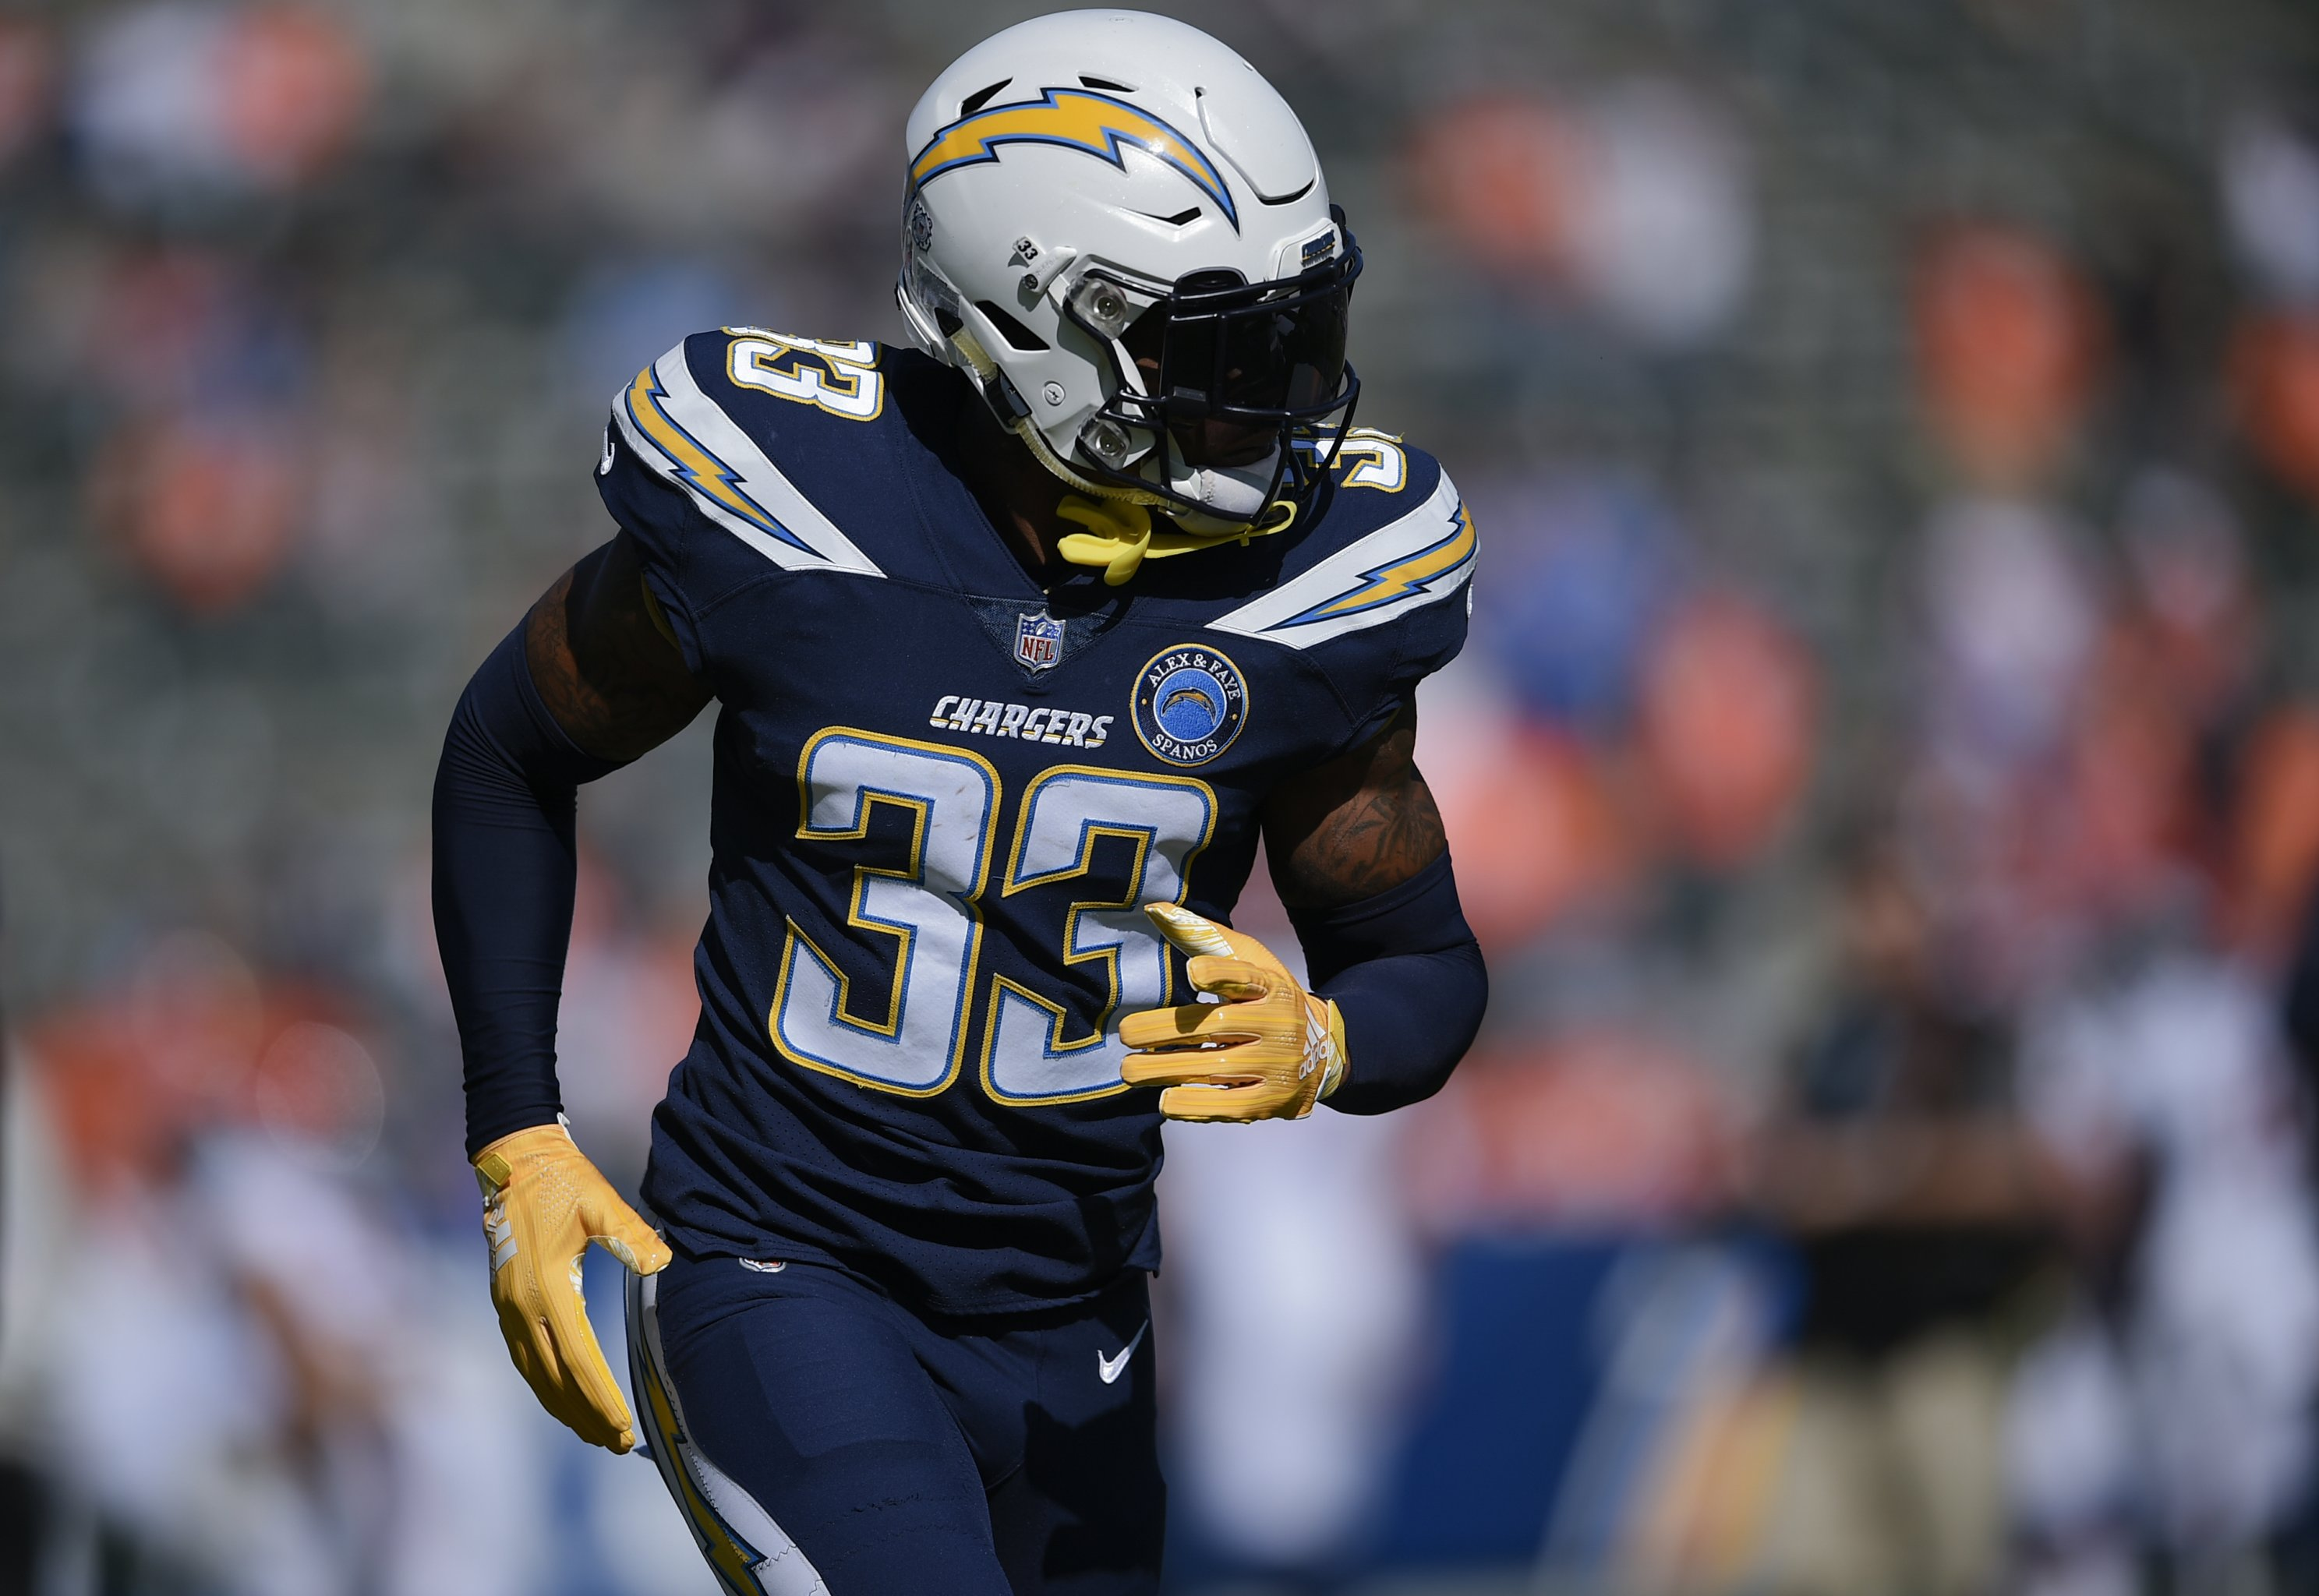 promo code 90cc4 138b1 How the Chargers' Derwin James Is Forever Redefining the ...